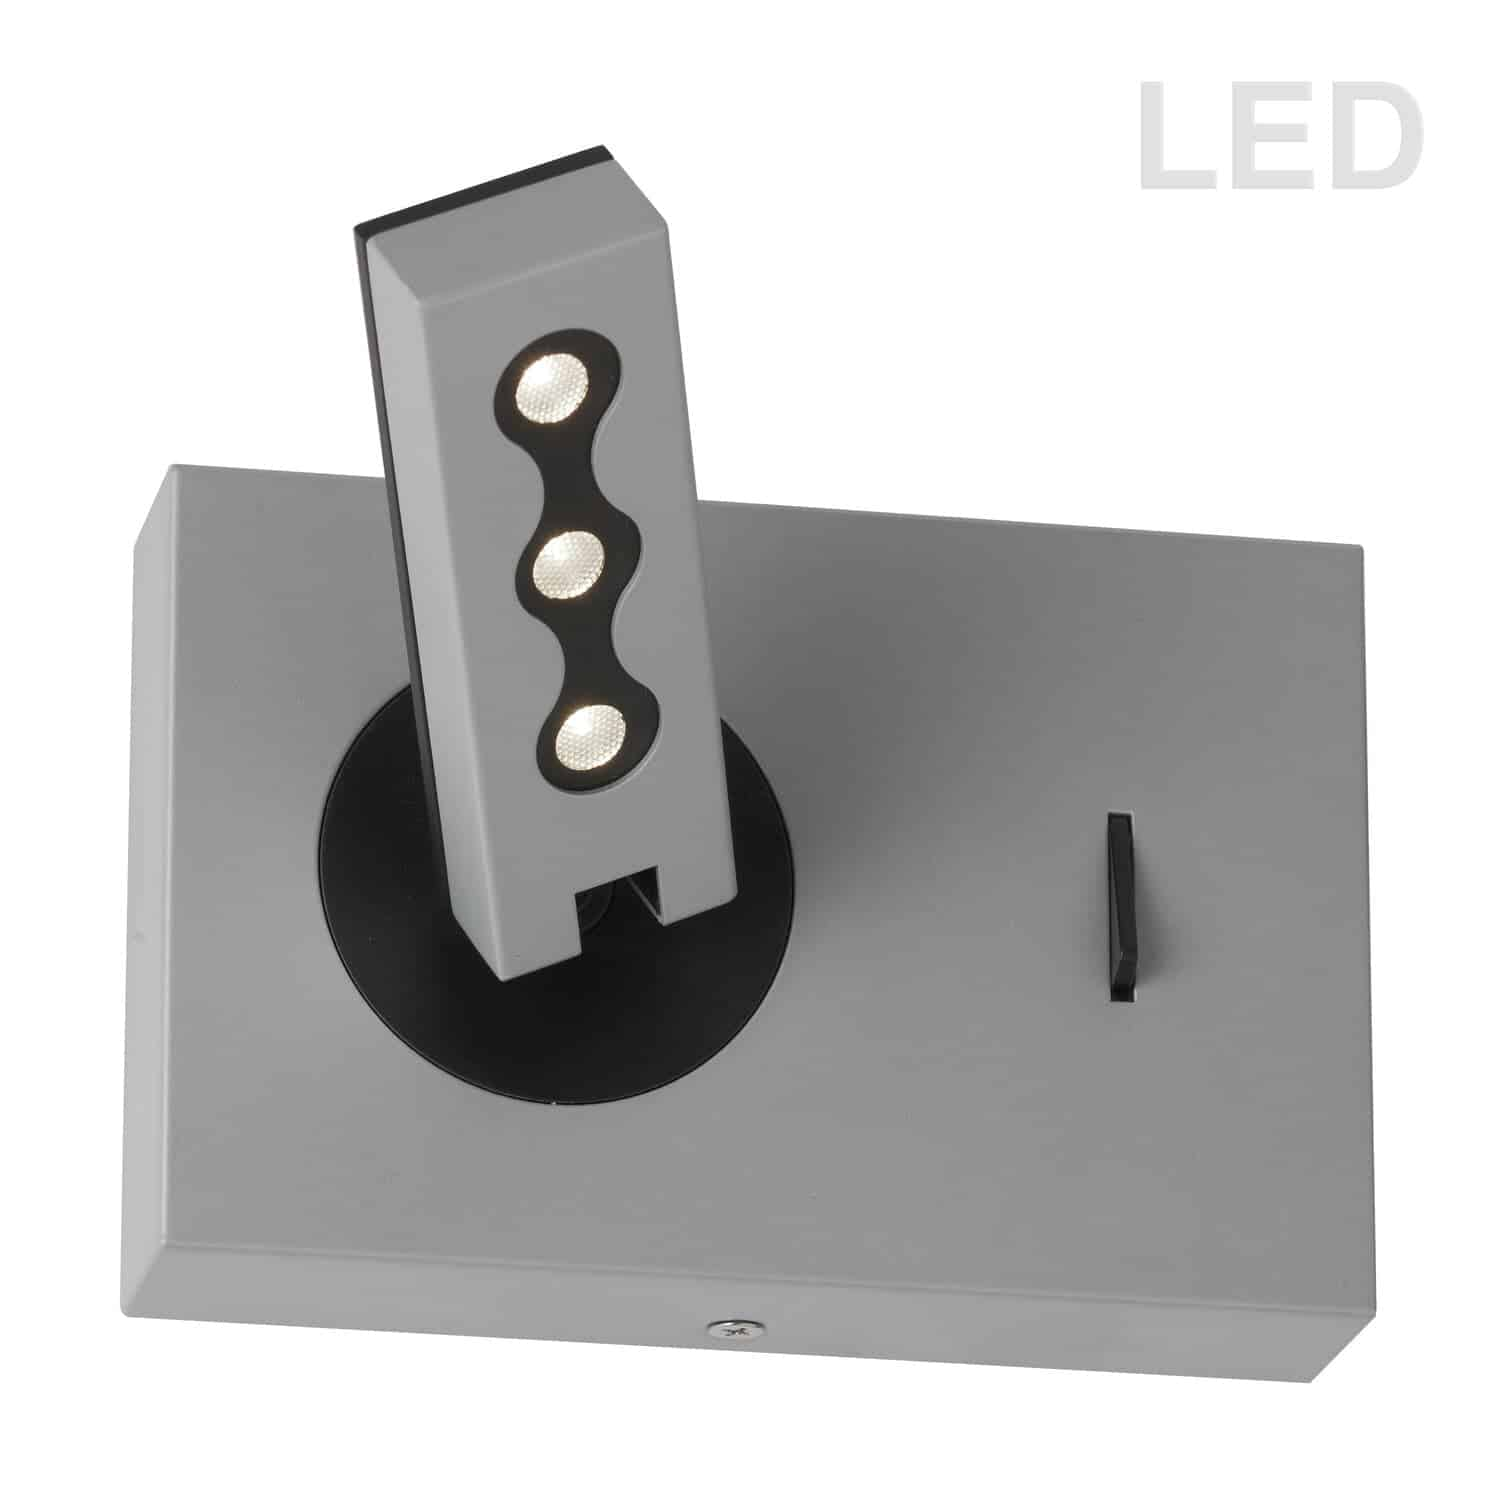 Wall Sconce w/LED Reading Lamp, Silver Finish